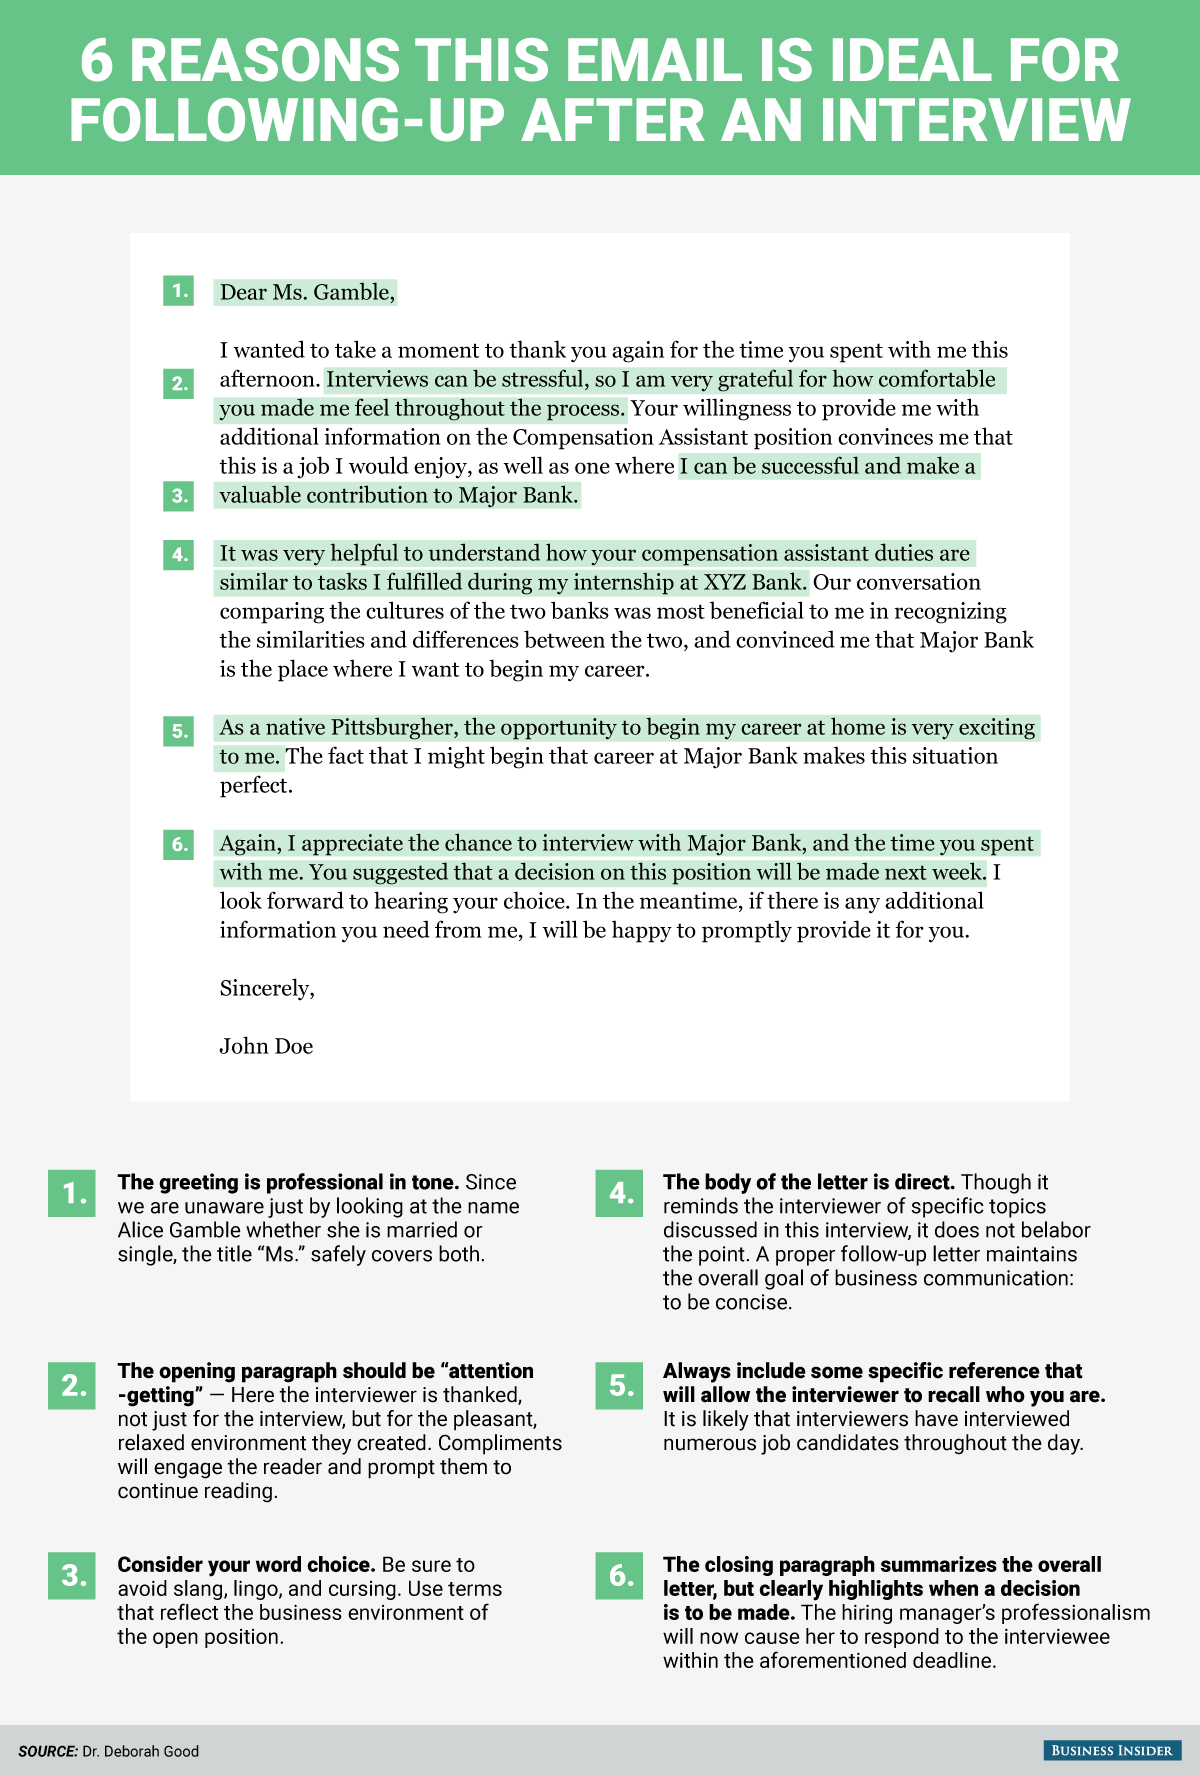 best images about job interview thank you note examples and 17 best images about job interview thank you note examples and wording on interview messages and now it